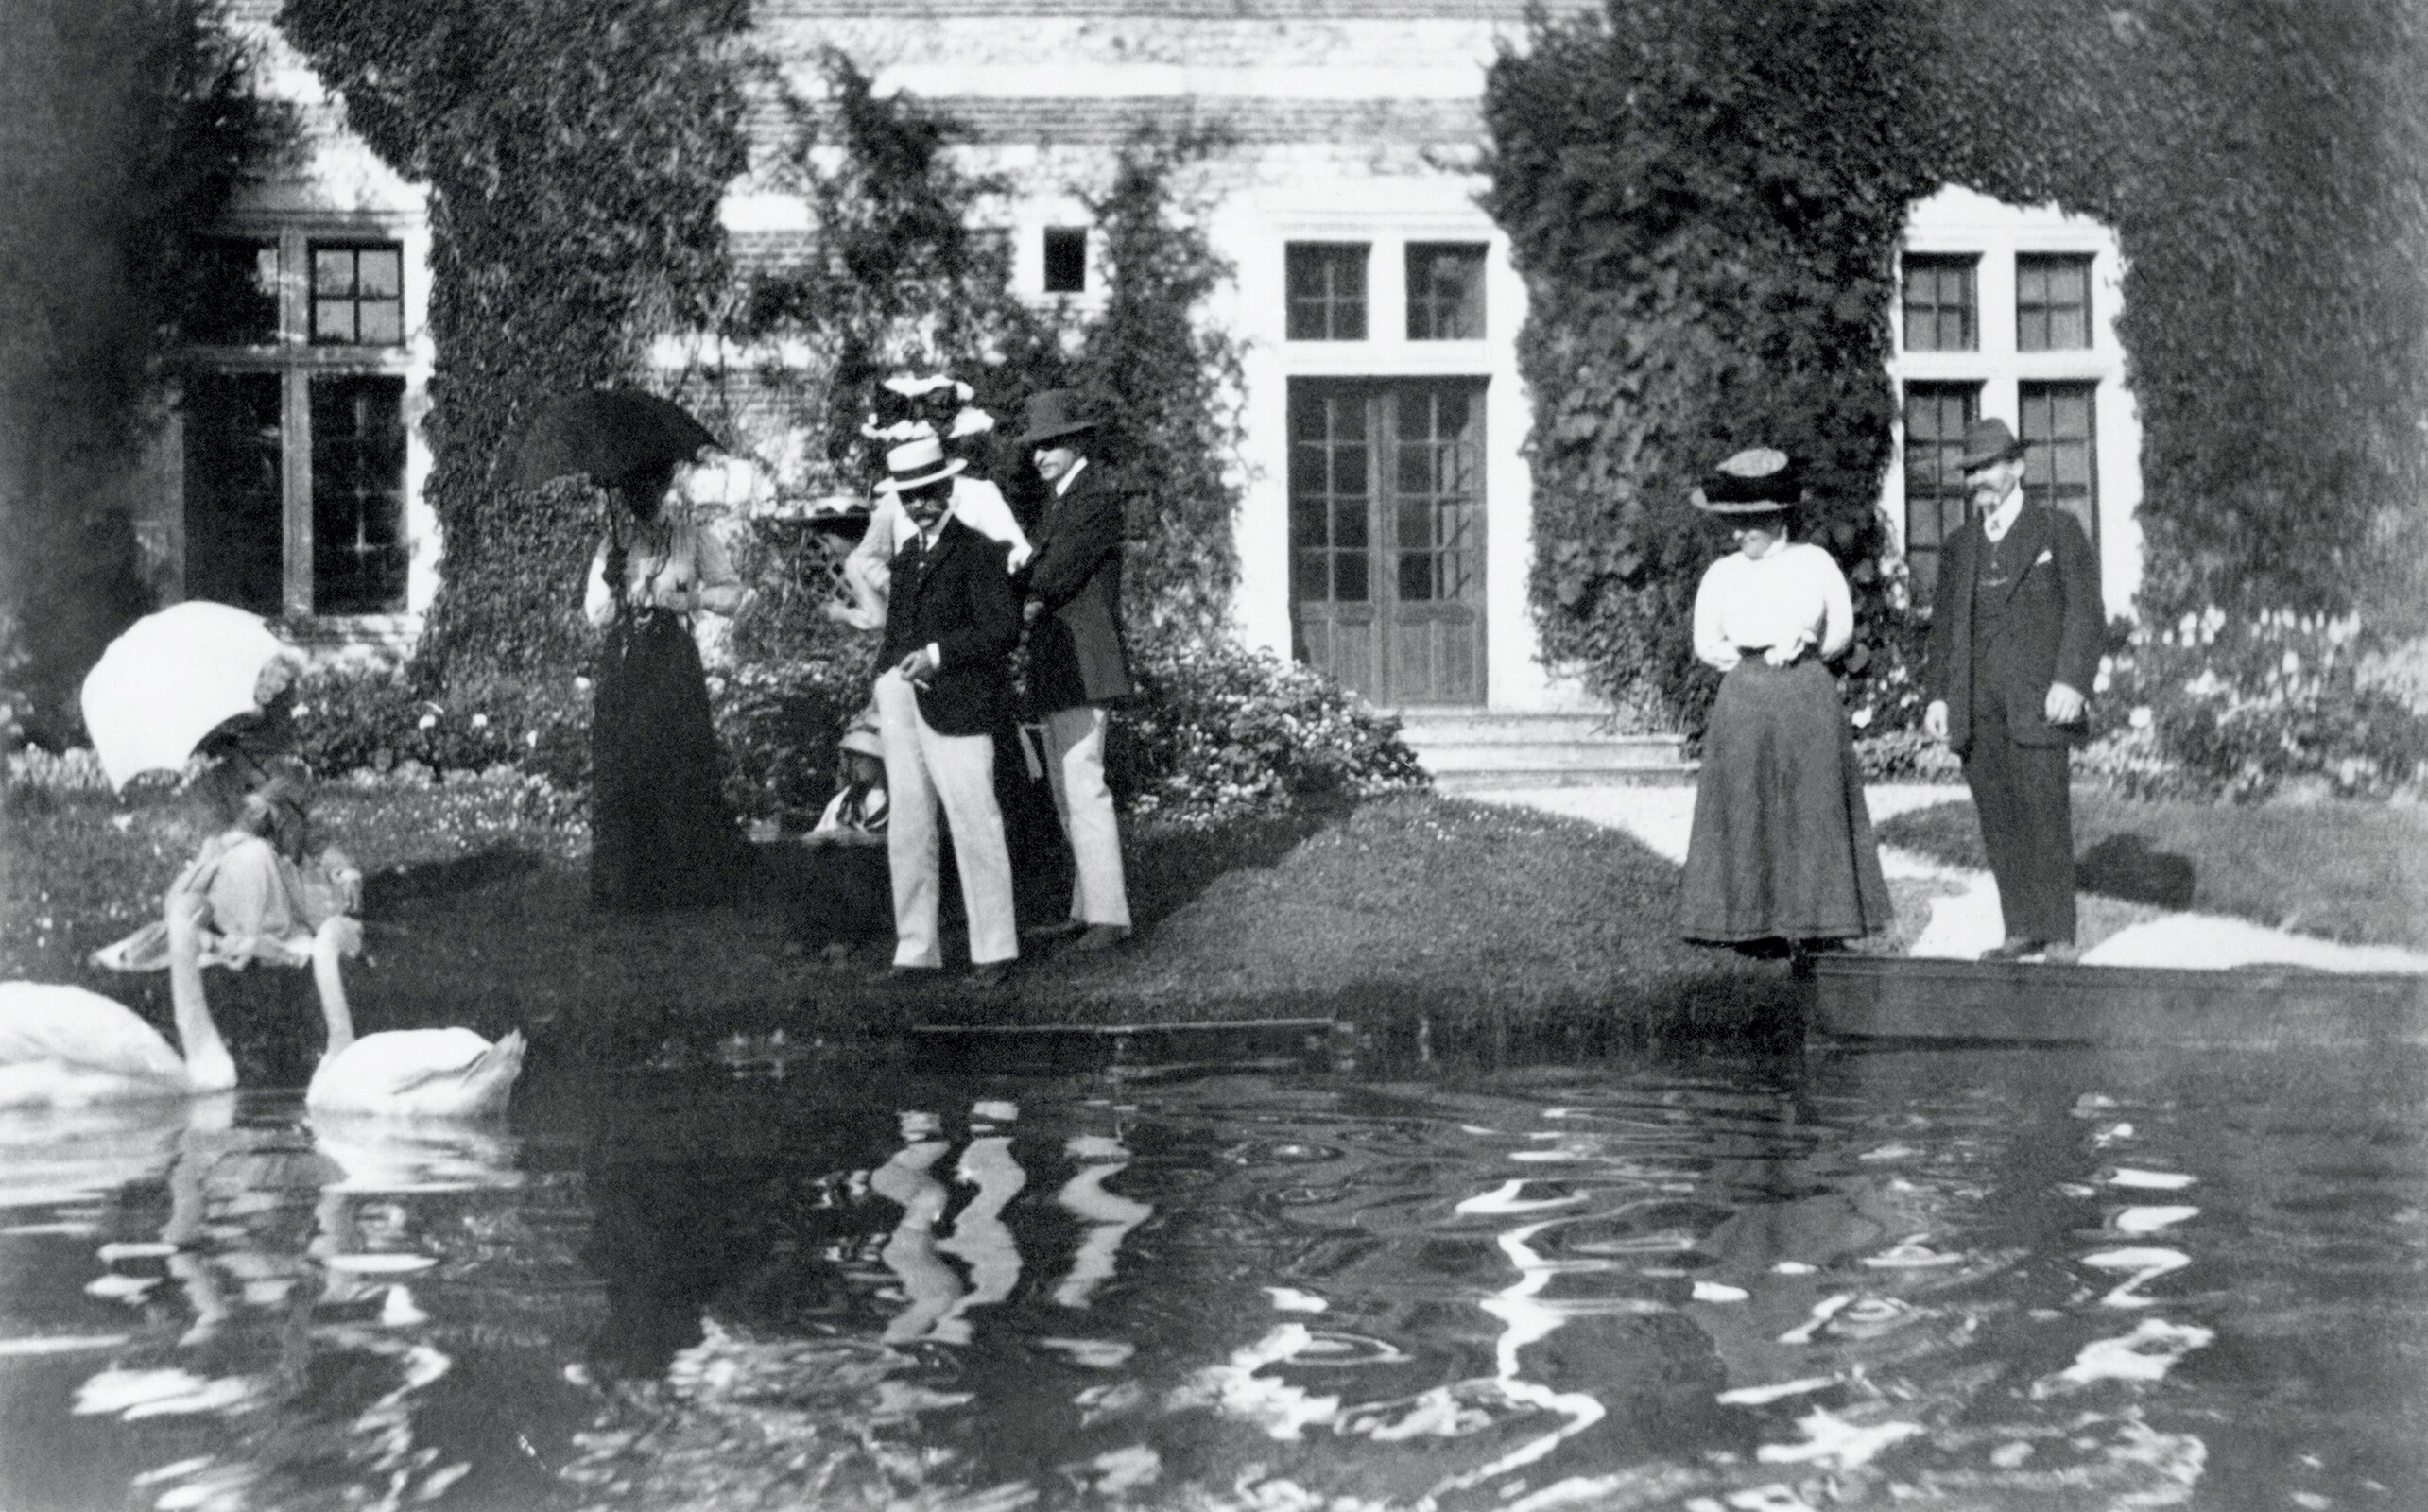 In front of the château de Mirville, Baron Pierre de COUBERTIN, his brother-in-law Gaëtan de NAVACELLE, Countess and Count Maurice de MADRE.